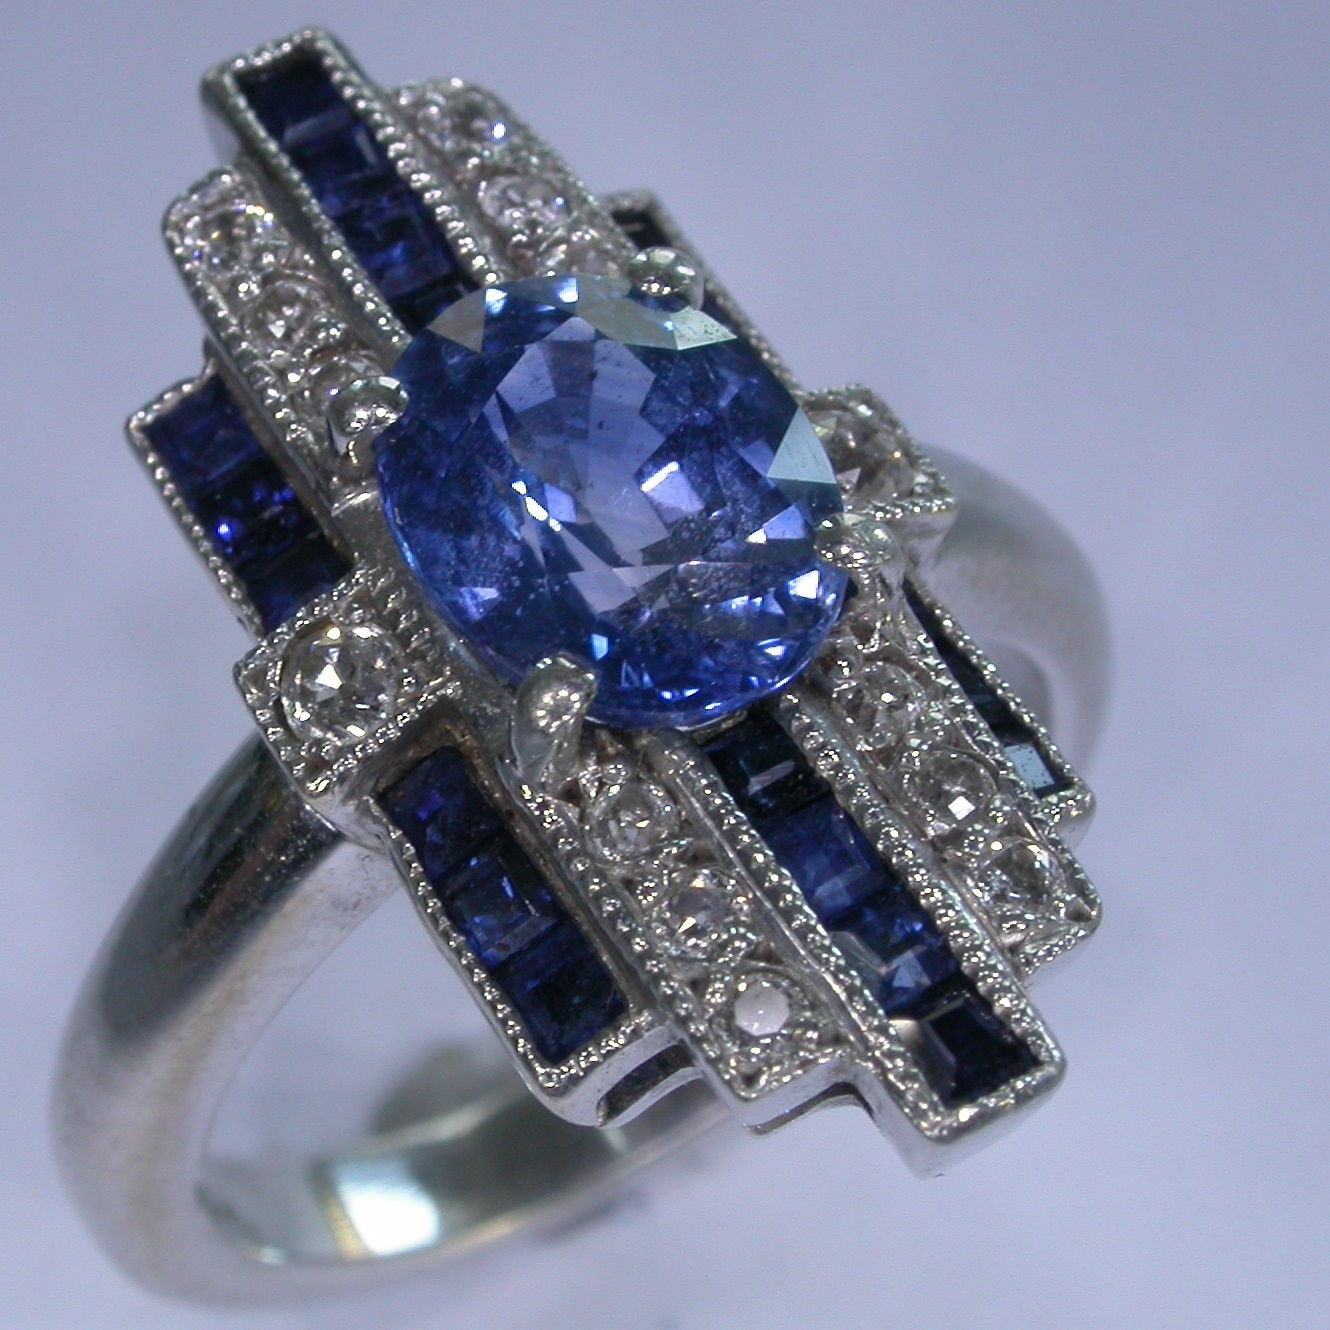 Melbourne Coloured Stone Rings - #7193